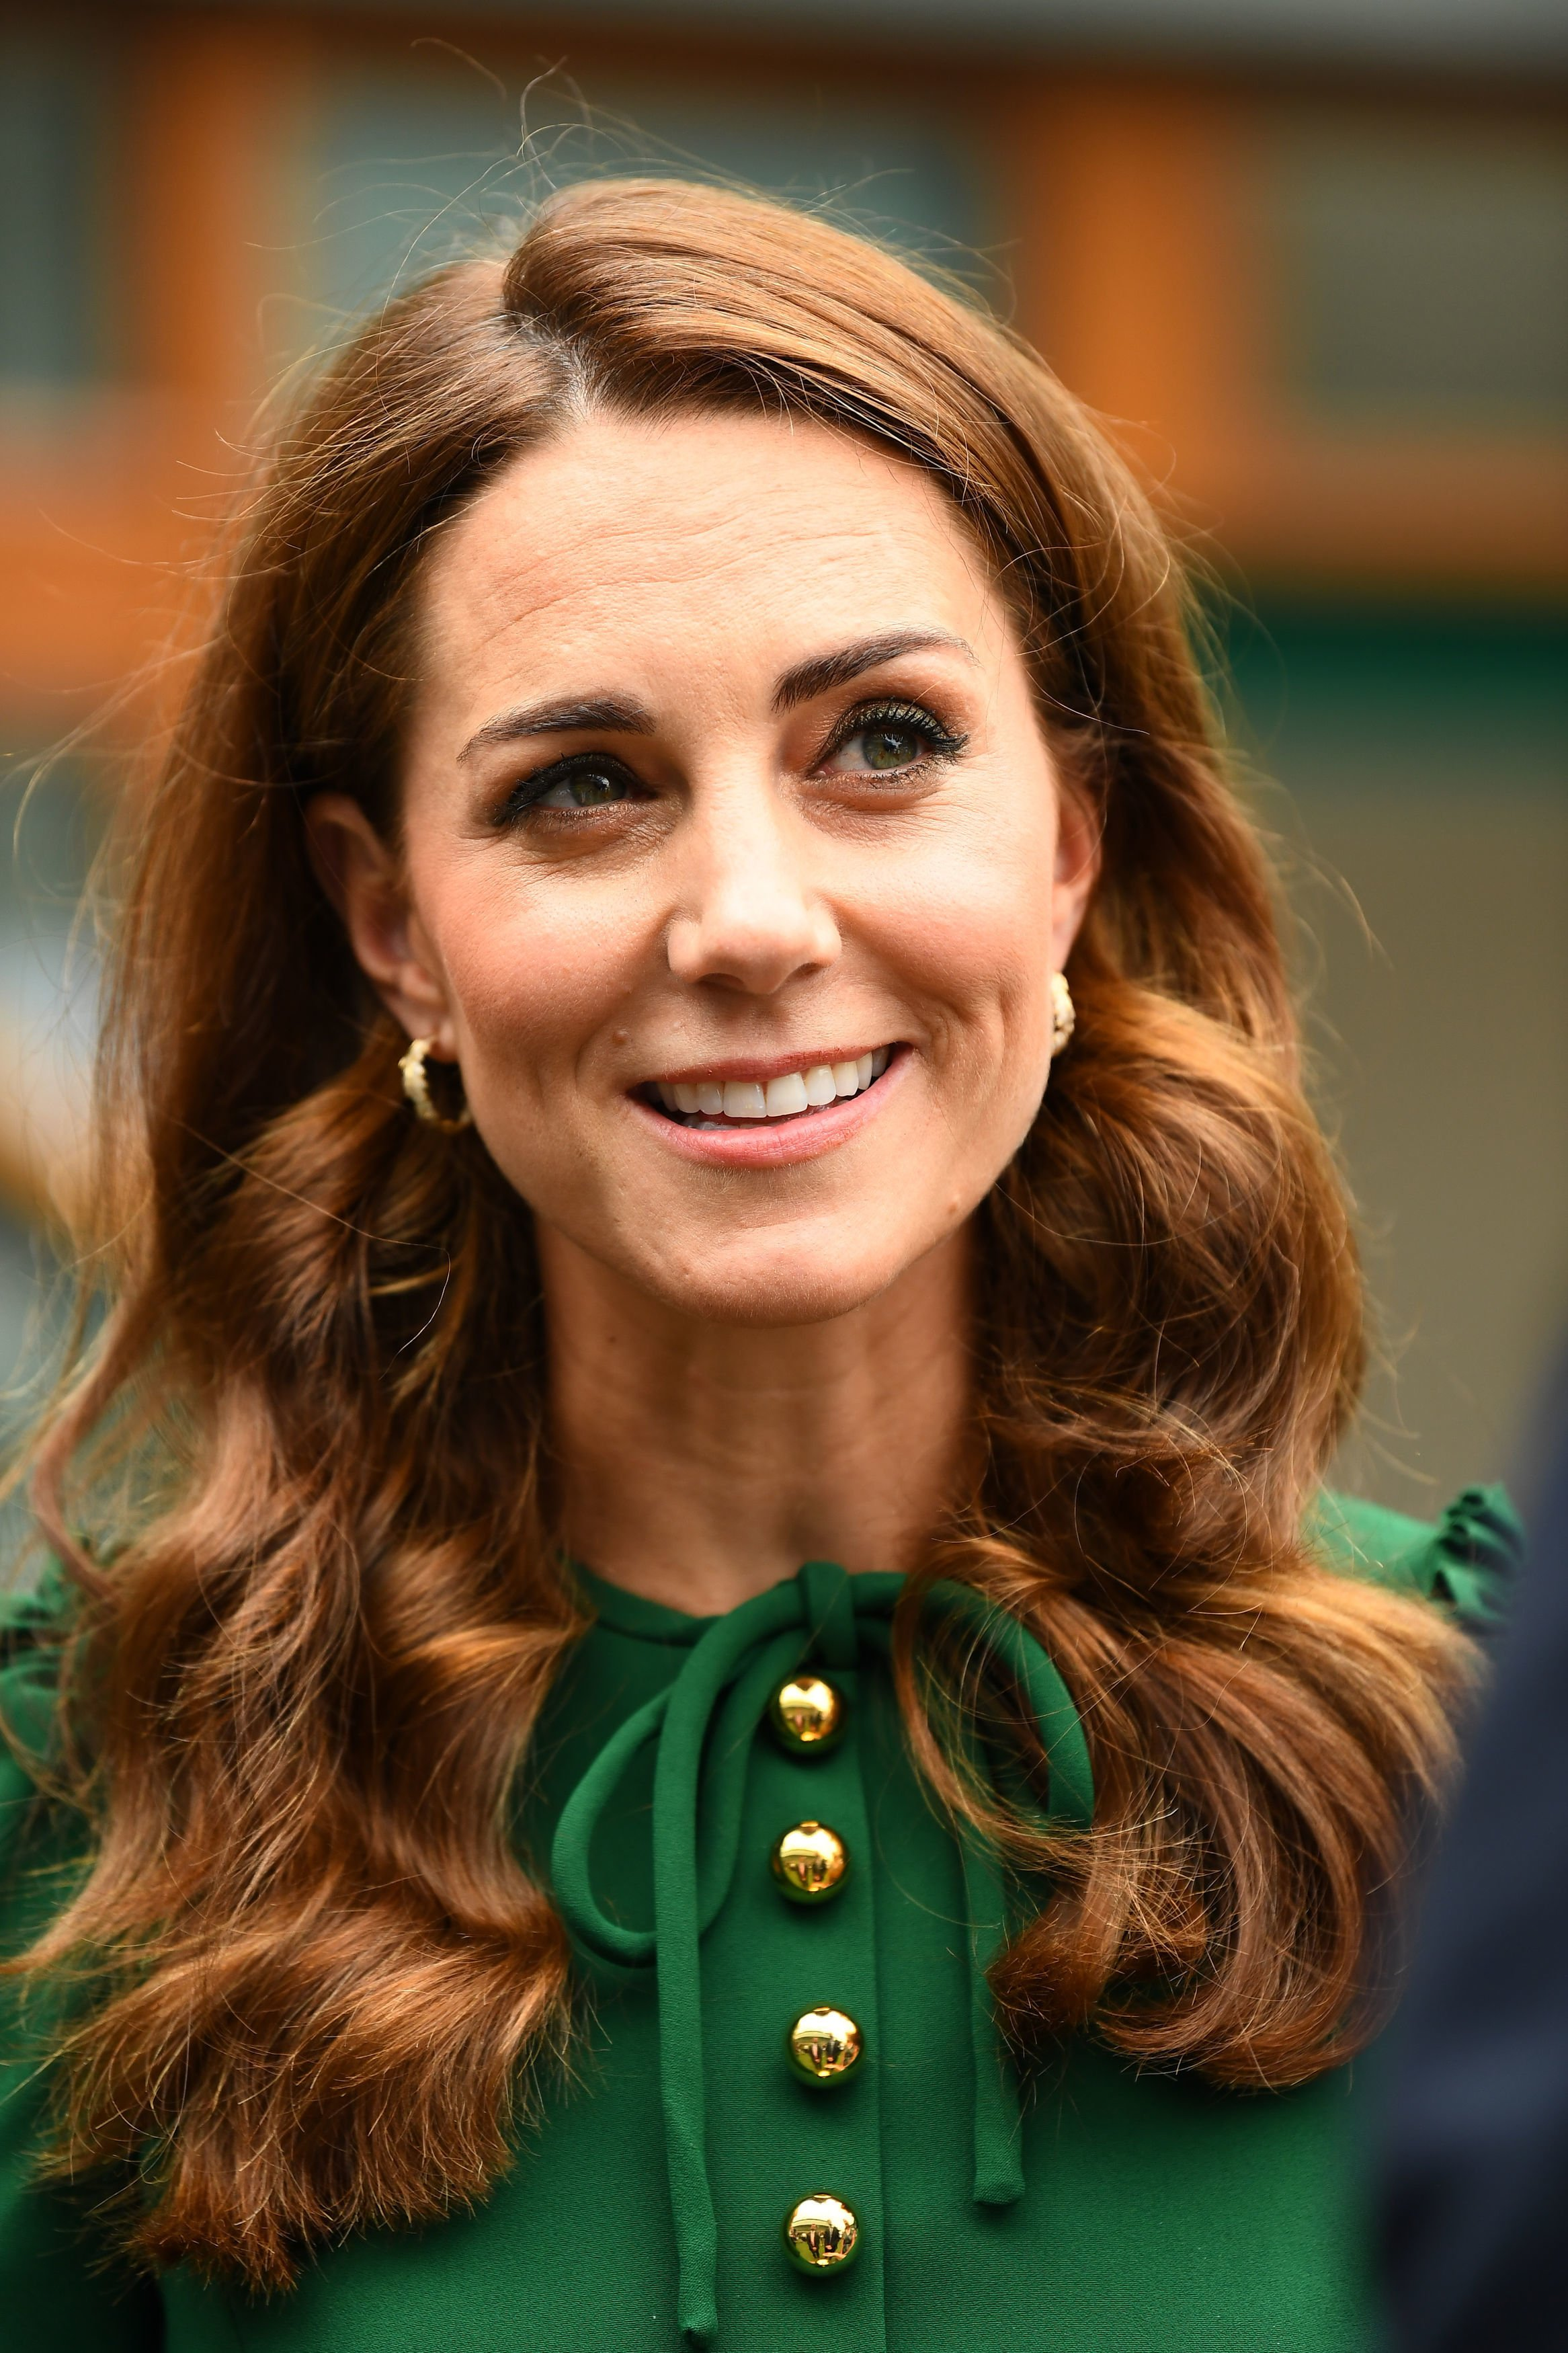 Duchess Kate at Wimbledon on July 13, 2019 | Photo: Getty Images